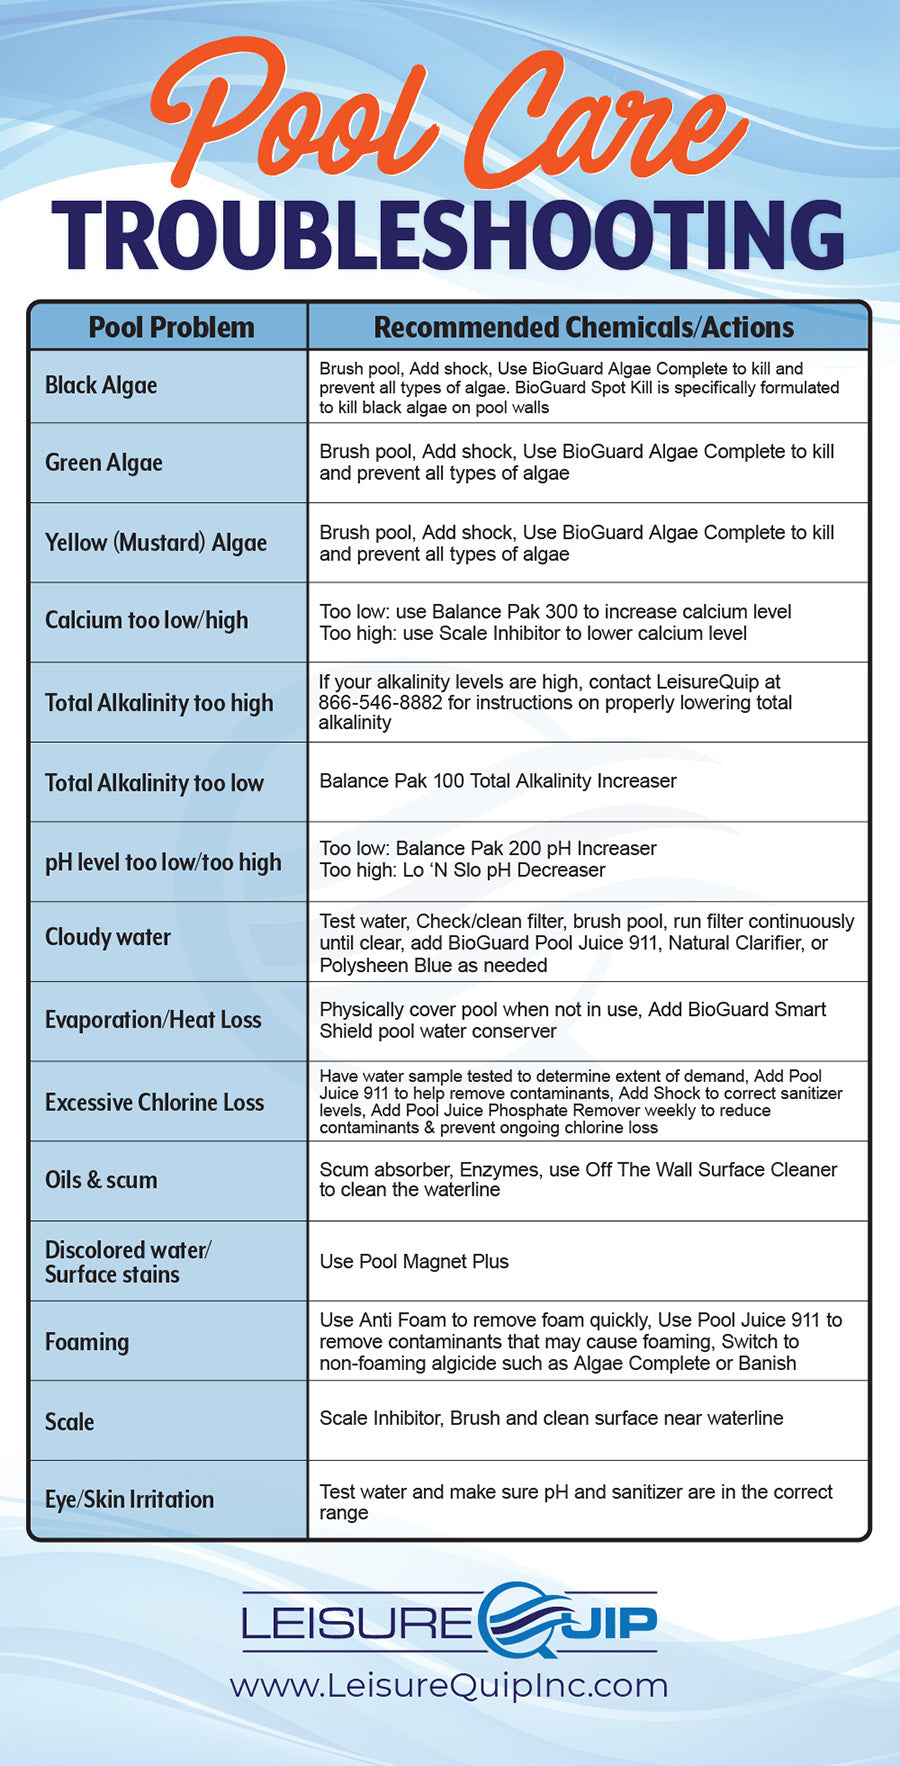 Swimming pool care troubleshooting guide